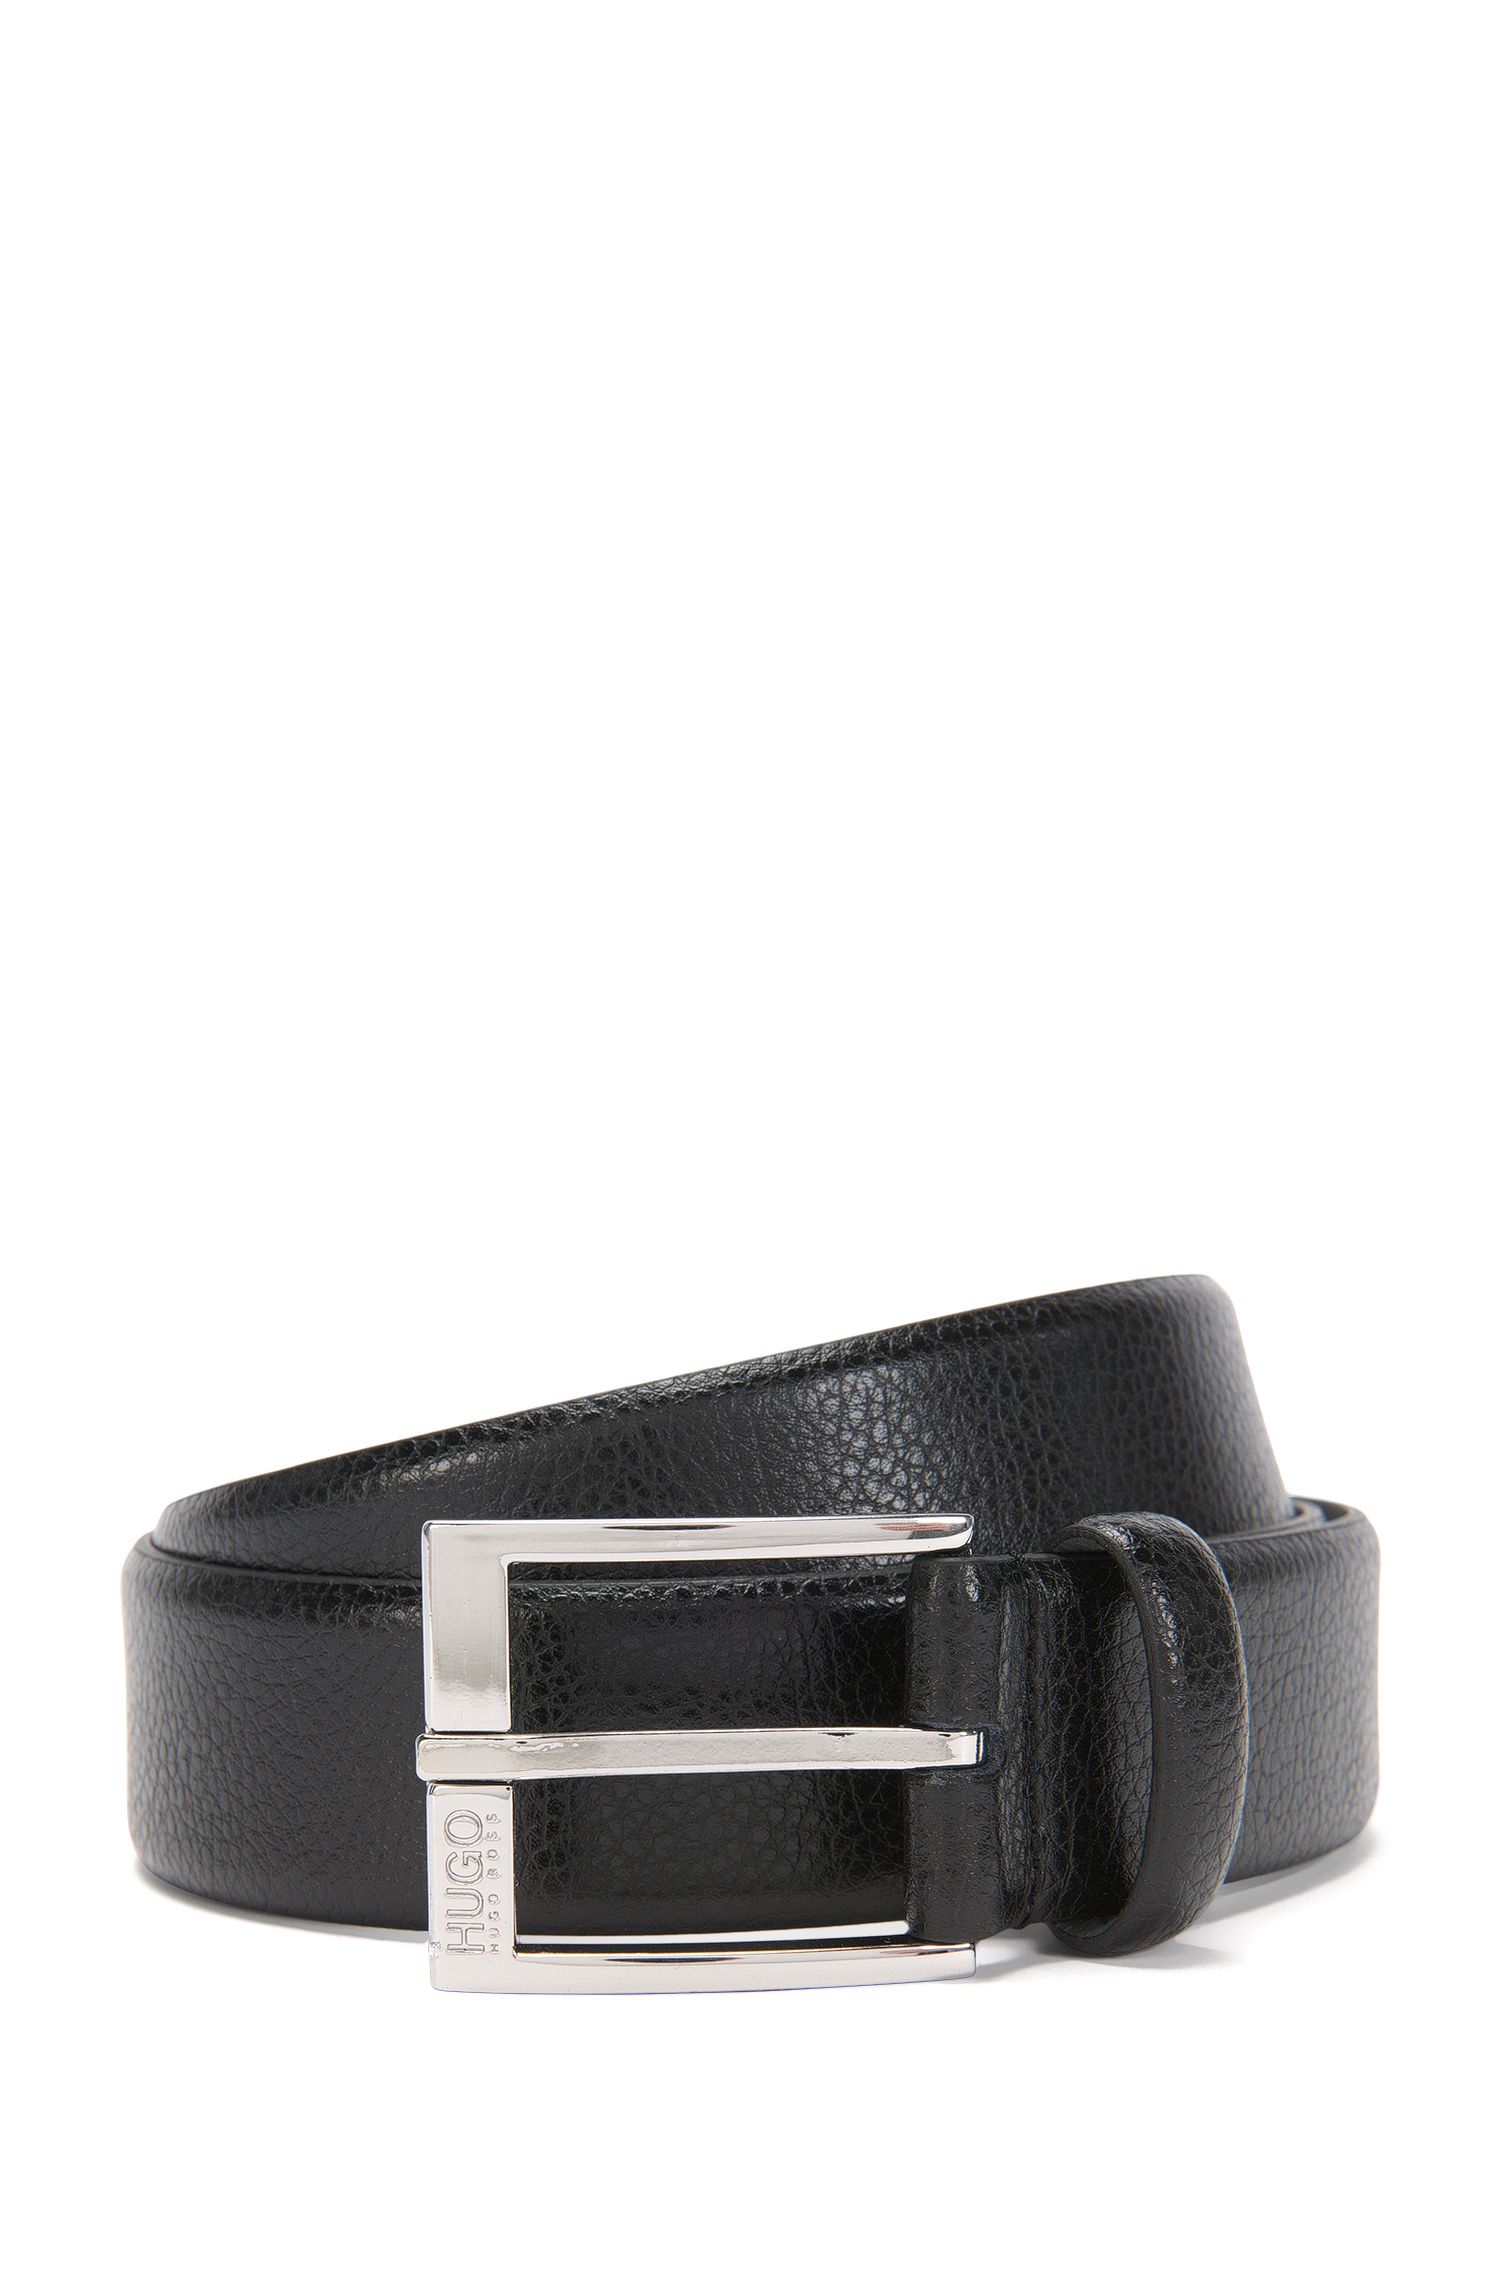 Grained-leather belt with polished pin buckle